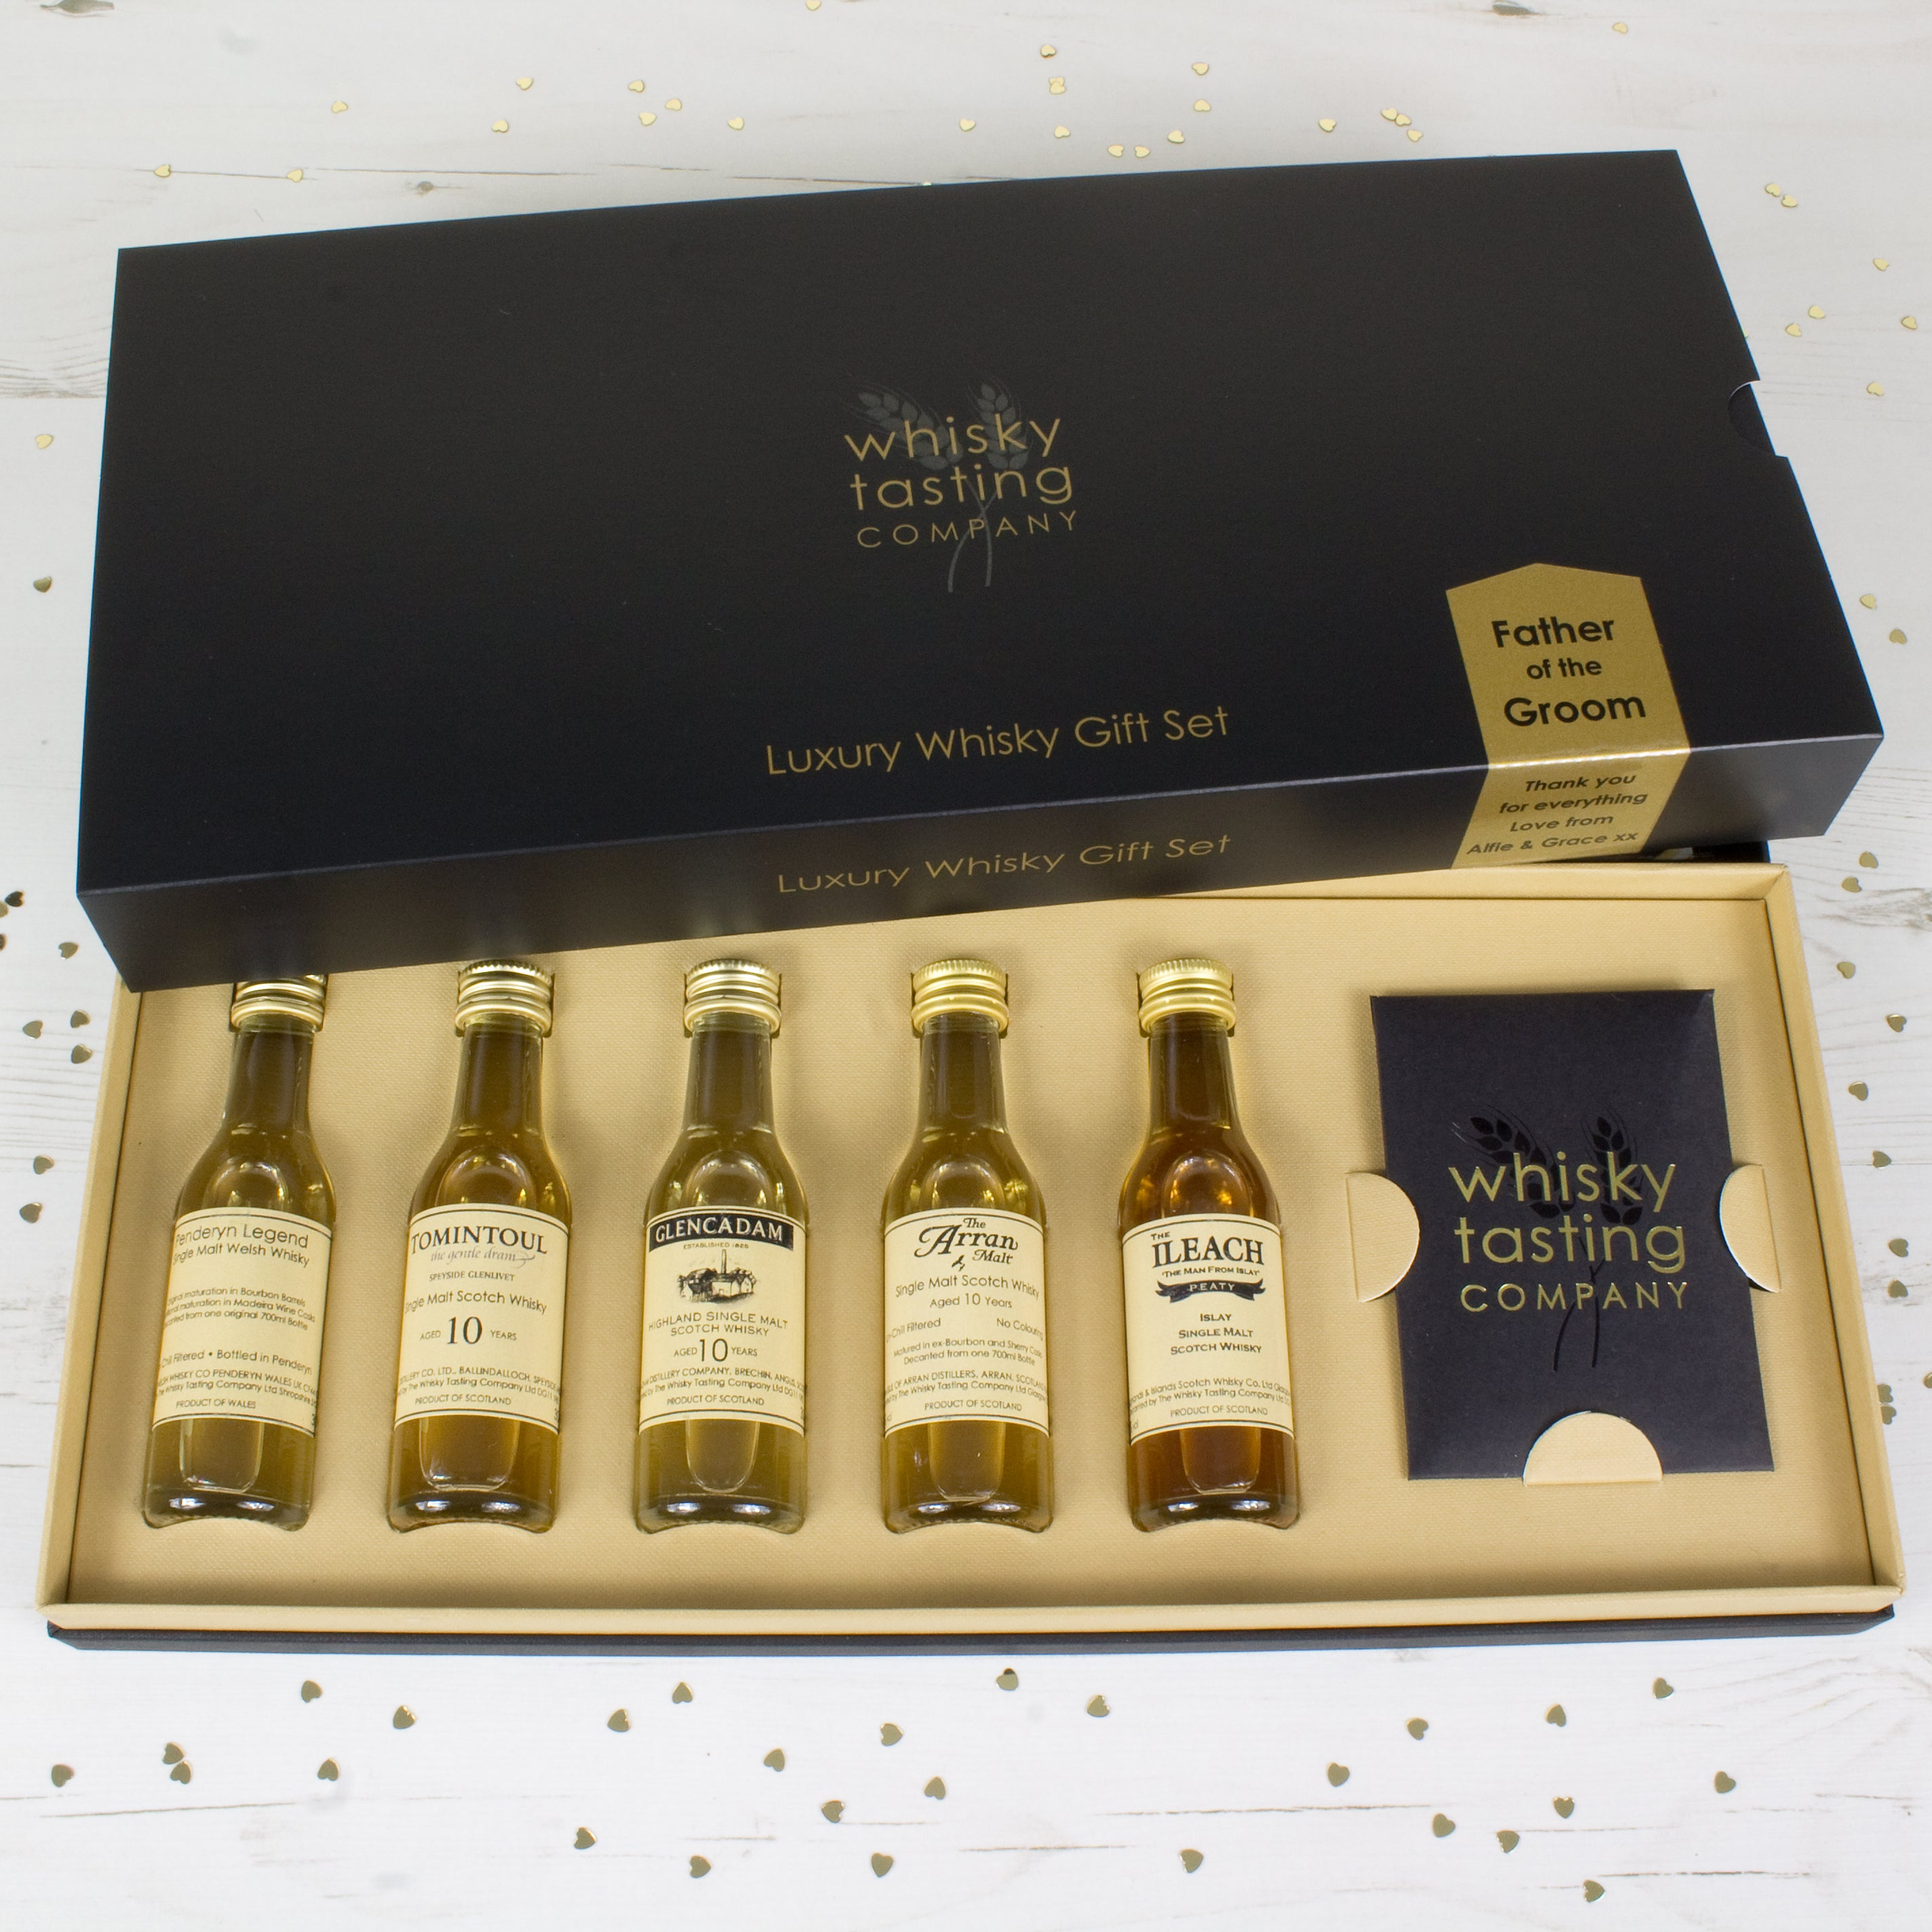 FATHER OF THE GROOM SINGLE MALT GIFT SET